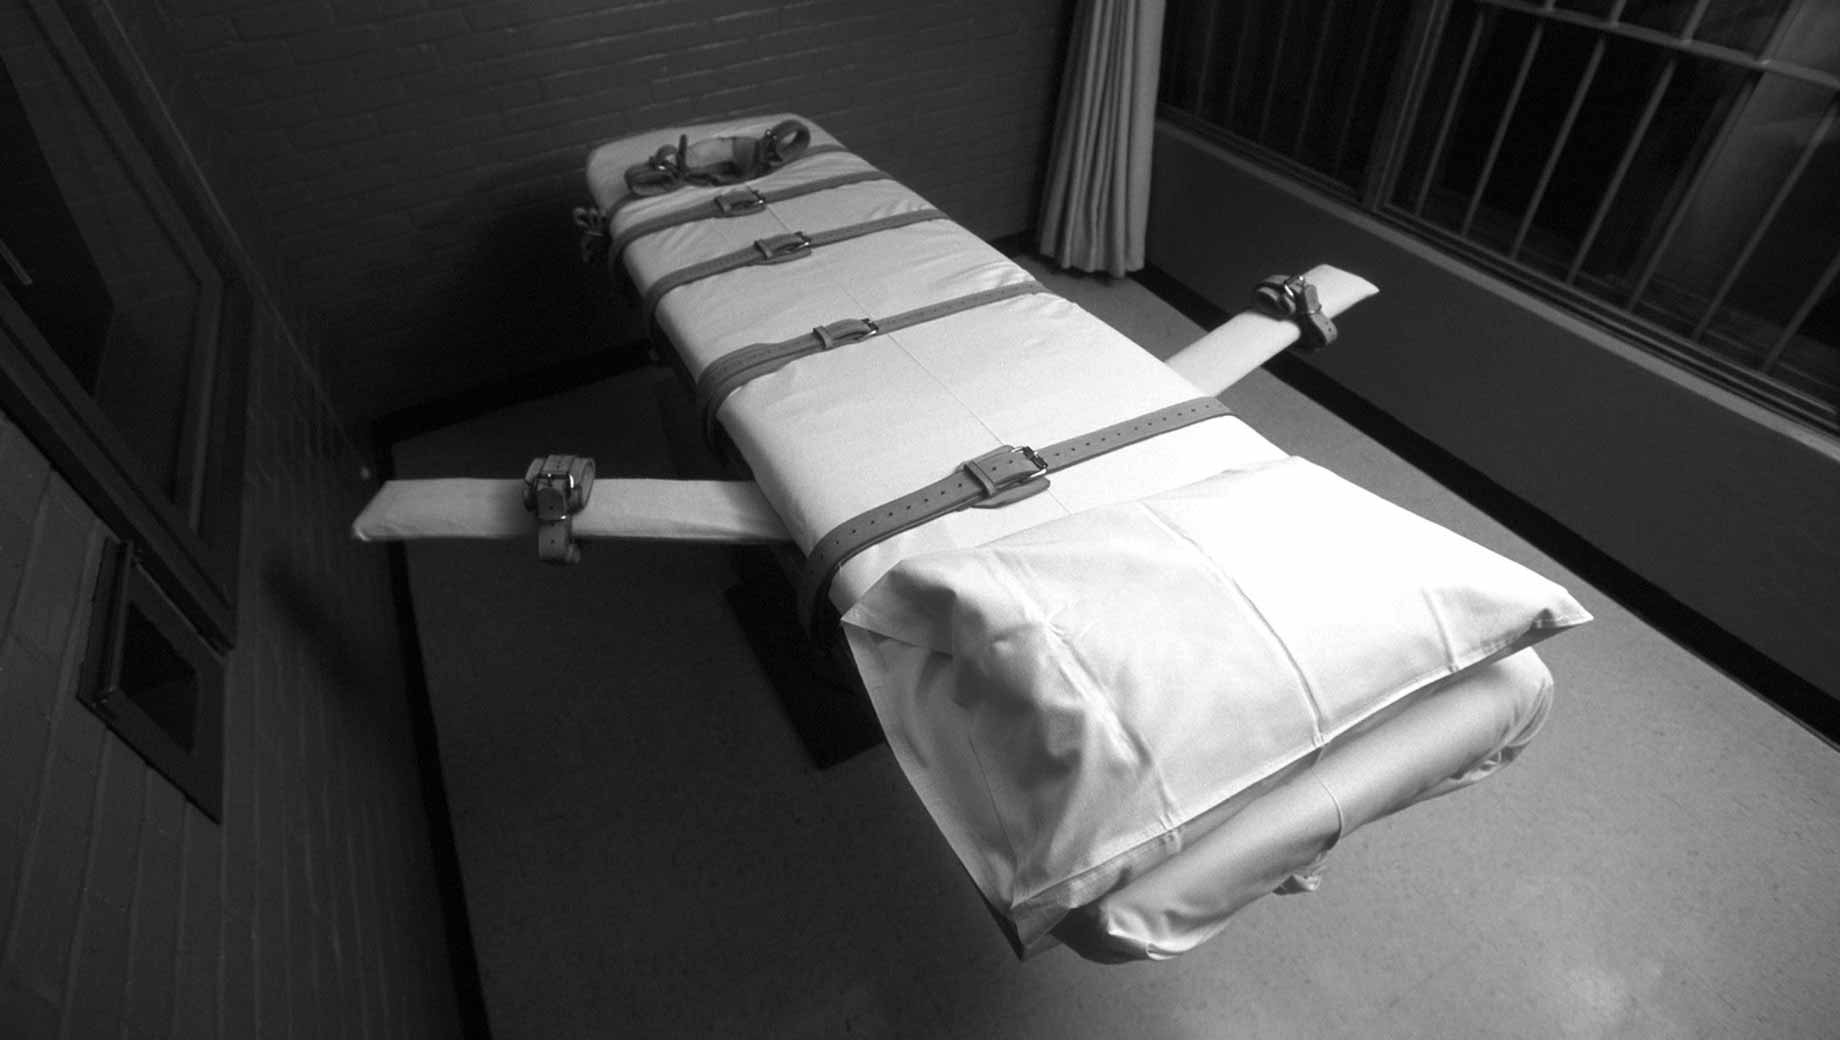 Record-Low 54% in U.S. Say Death Penalty Morally Acceptable